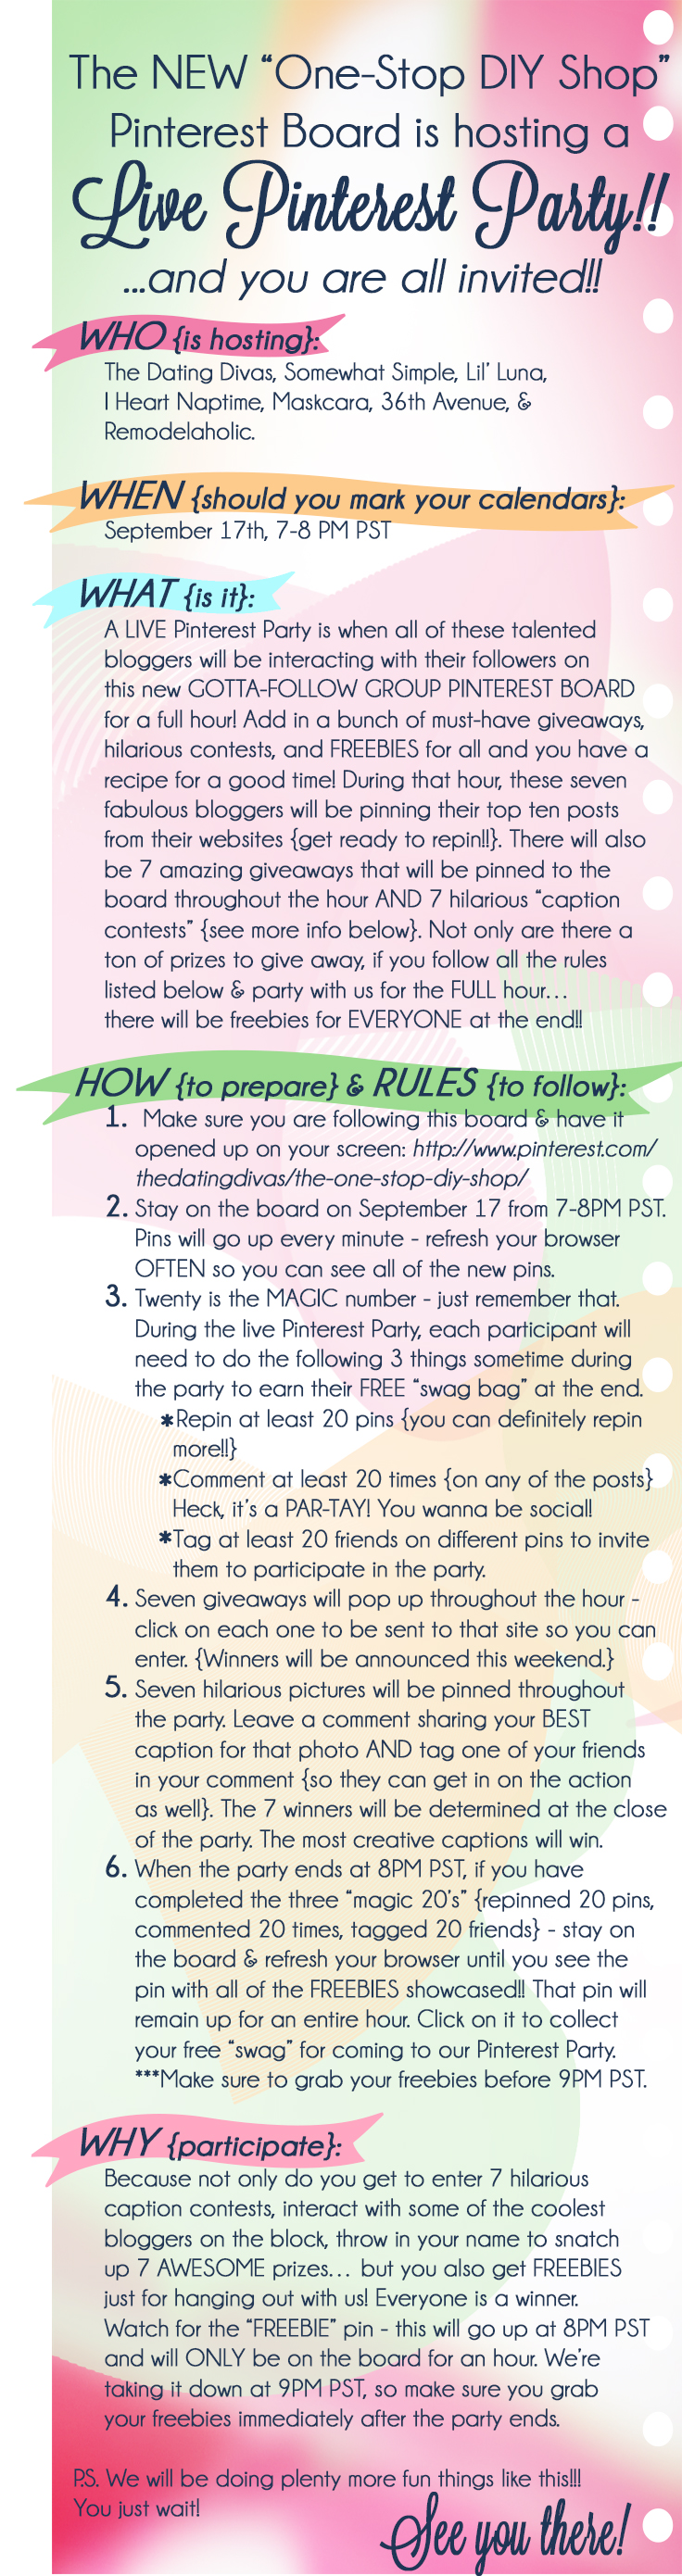 Party announcement and Rules